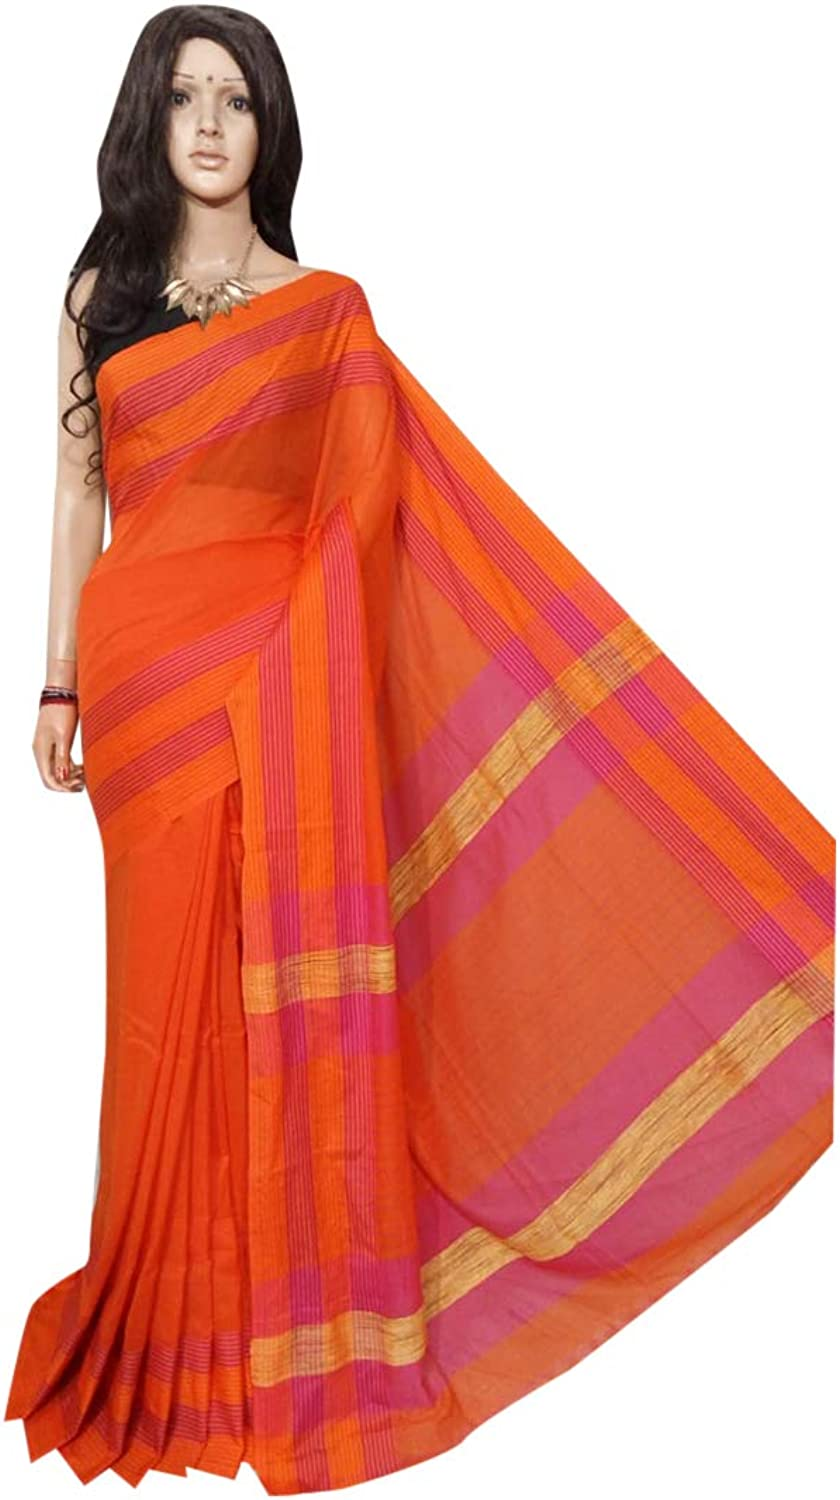 Traditional handloom khadi Saree Full weaving work by weavers Bengal Women sari Indian Ethnic Festive saree 116 6